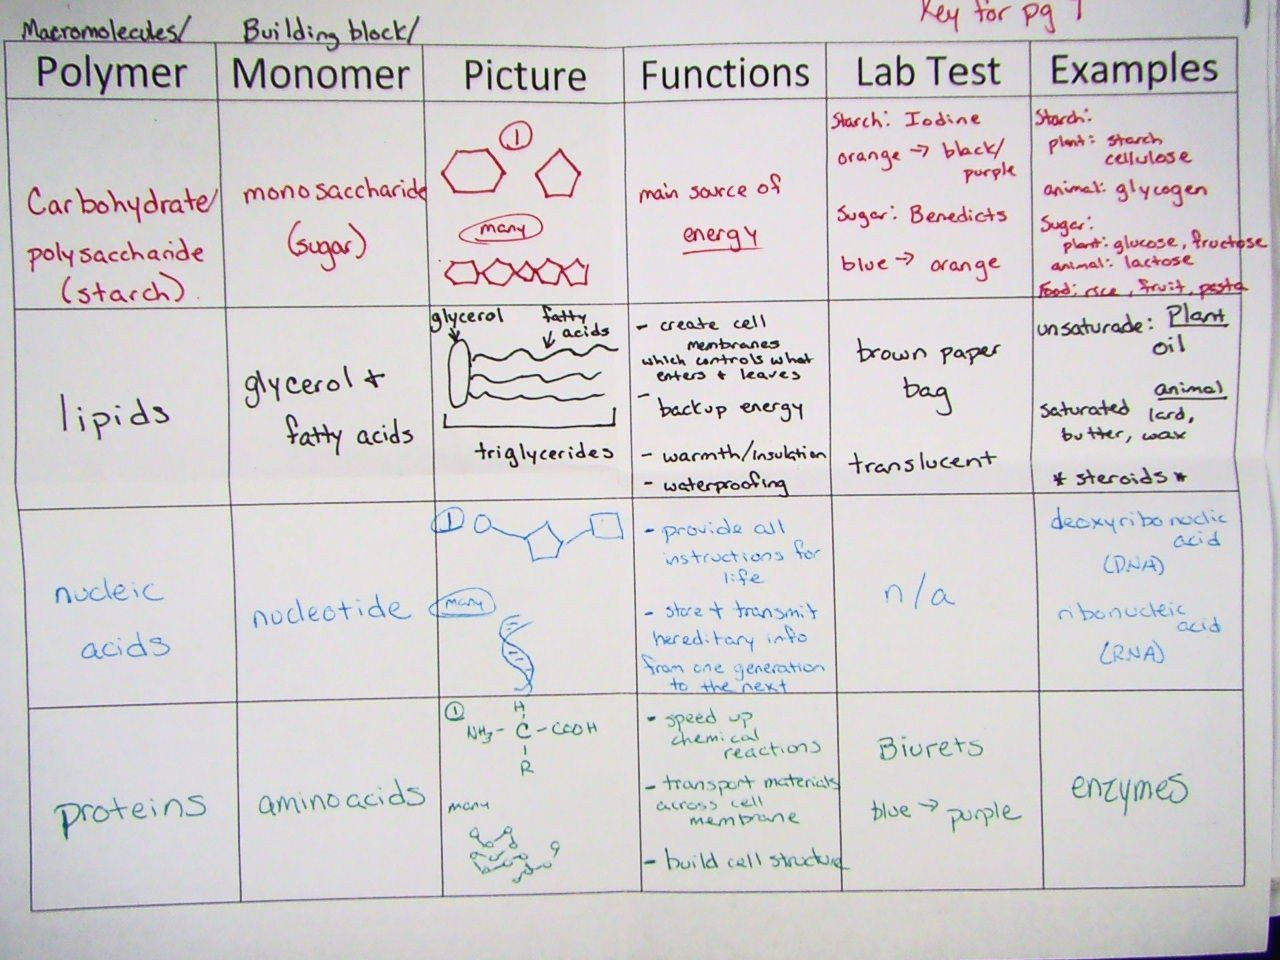 Macromolecules Chart Worksheet Answers Macromolecule Table